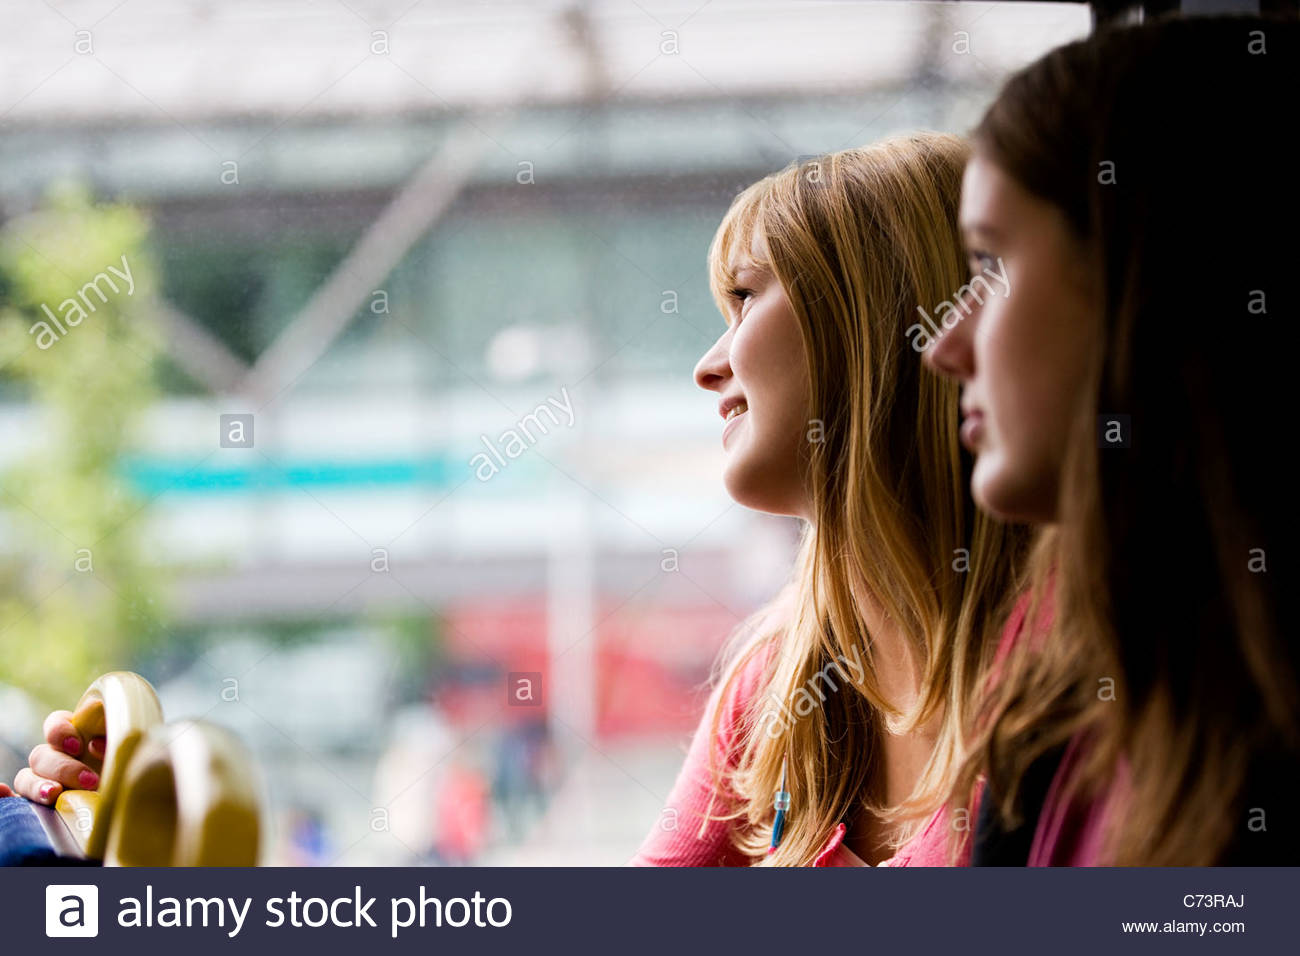 Two teenage girls sitting on a bus, one girl looking out of the window - Stock Image